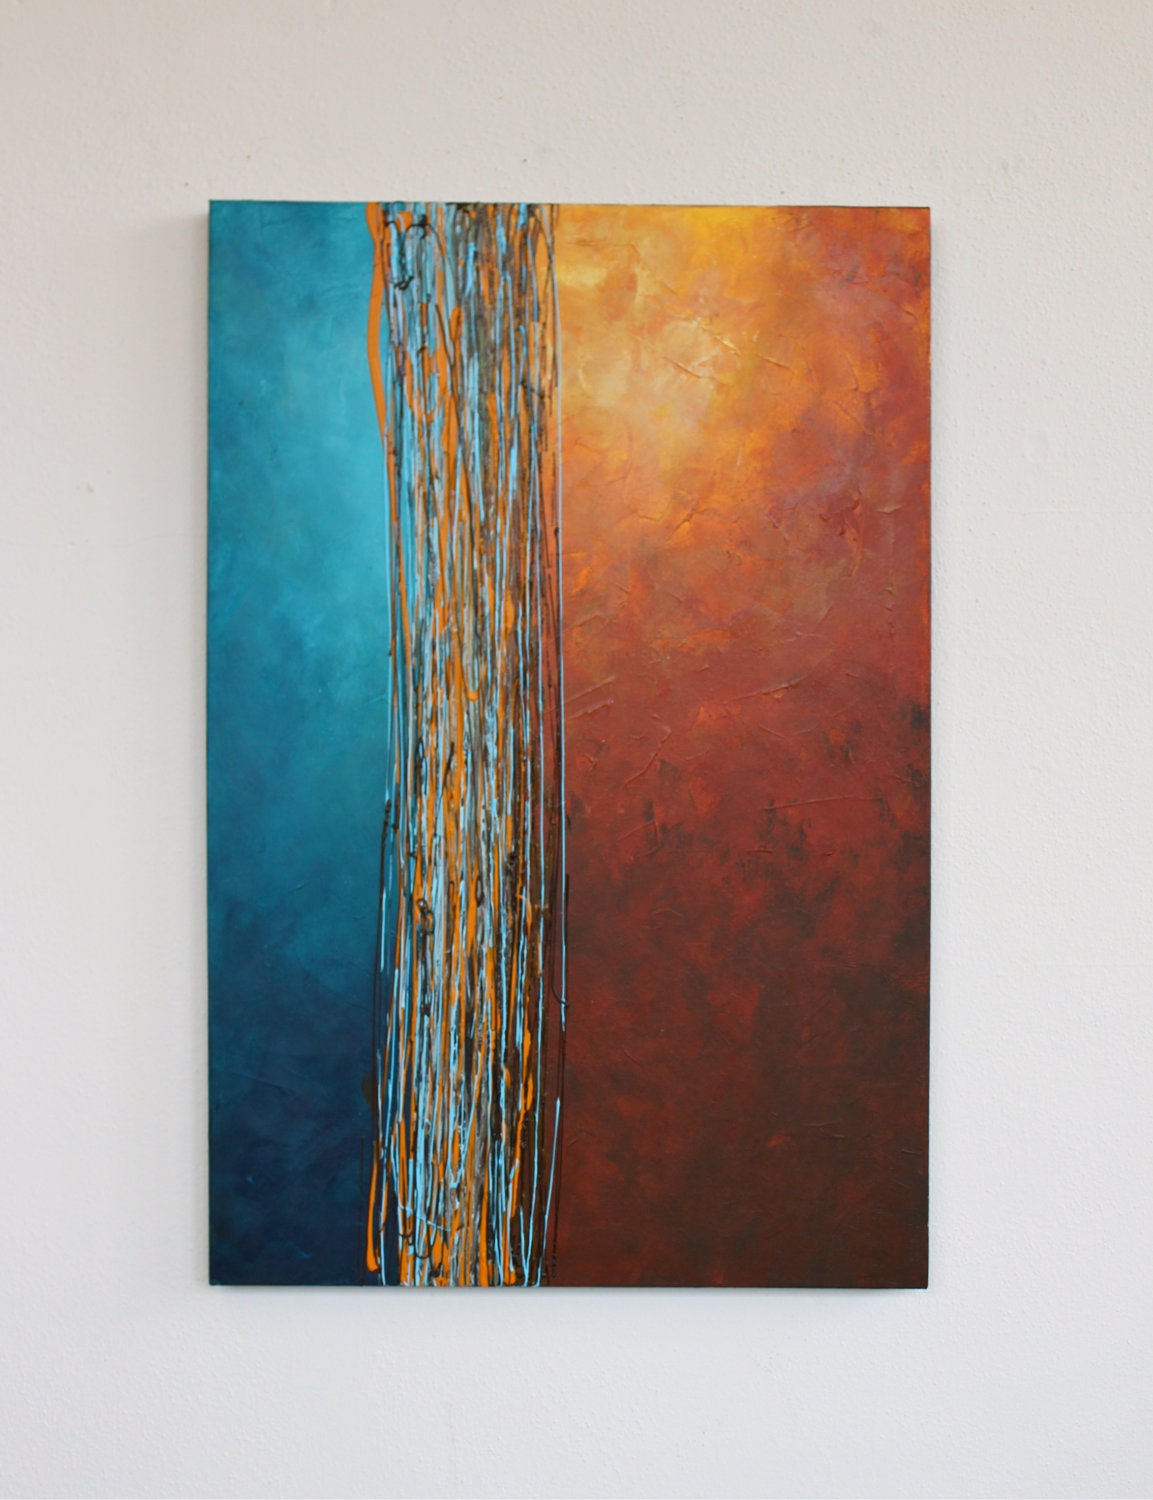 Intersection blue turquoise orange yellow rust brown original for Moderne kunstdrucke auf leinwand